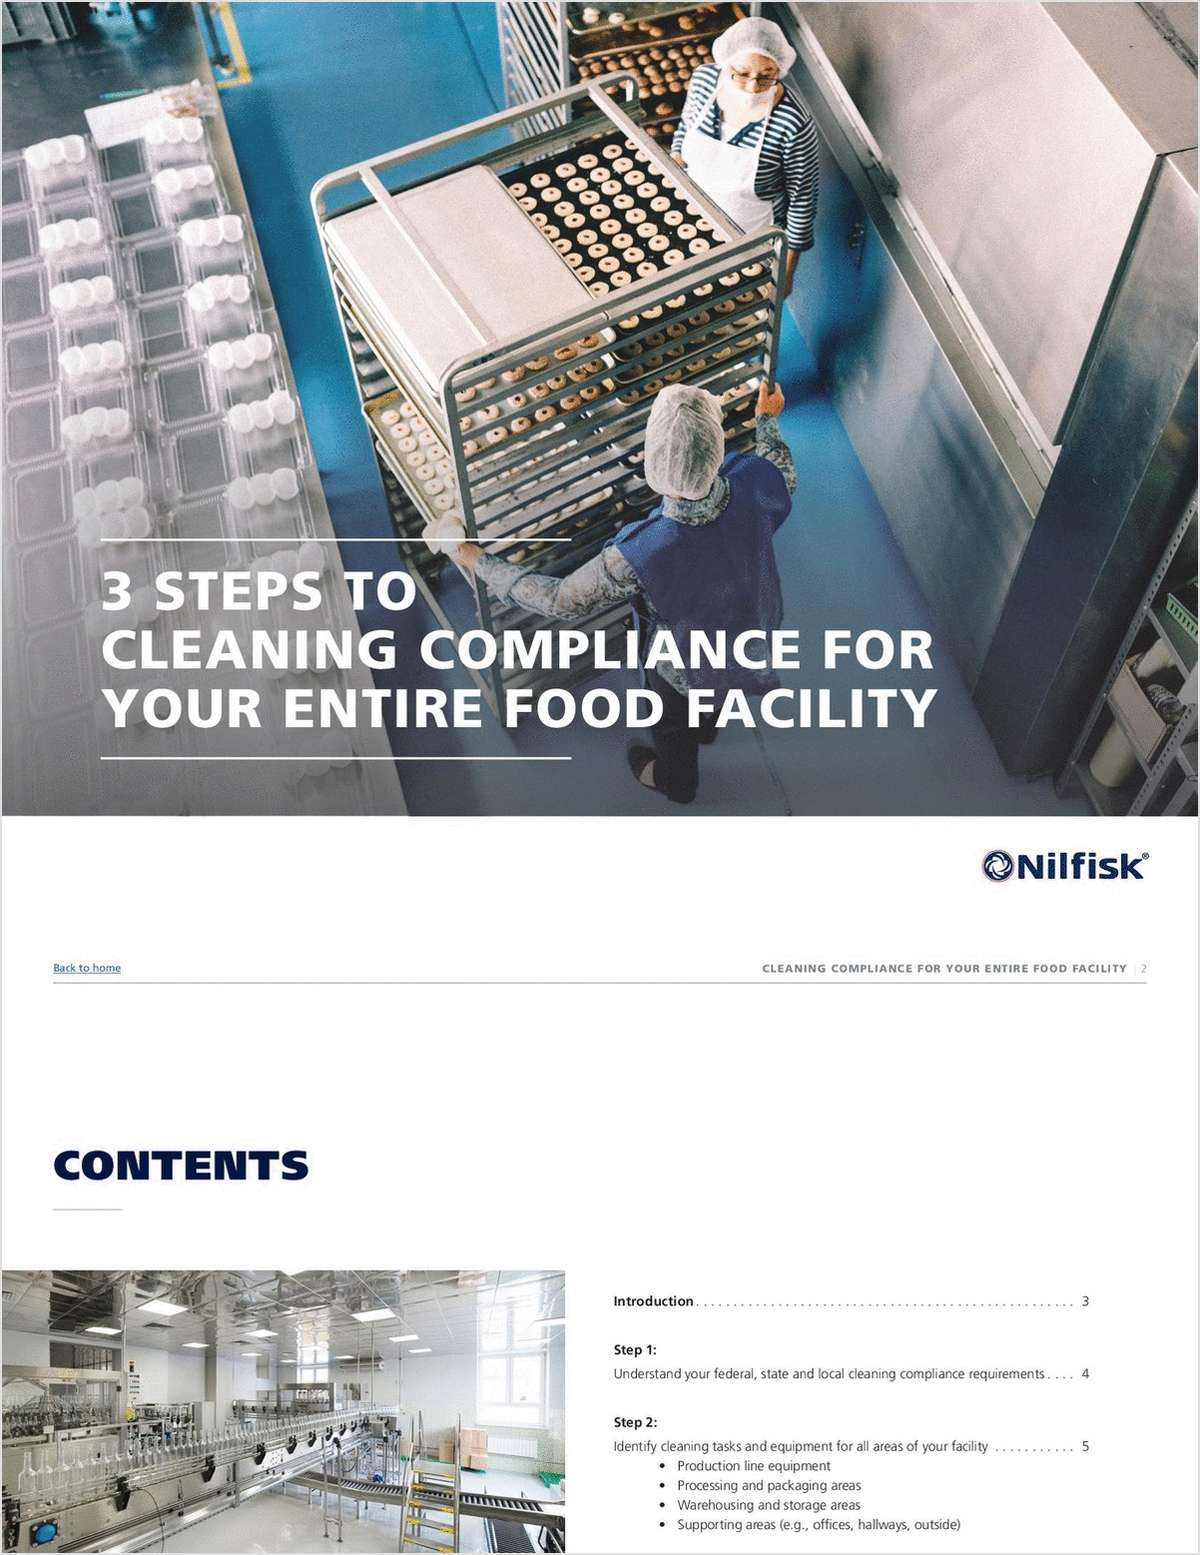 3 Steps to Cleaning Compliance for Your Entire Food Facility